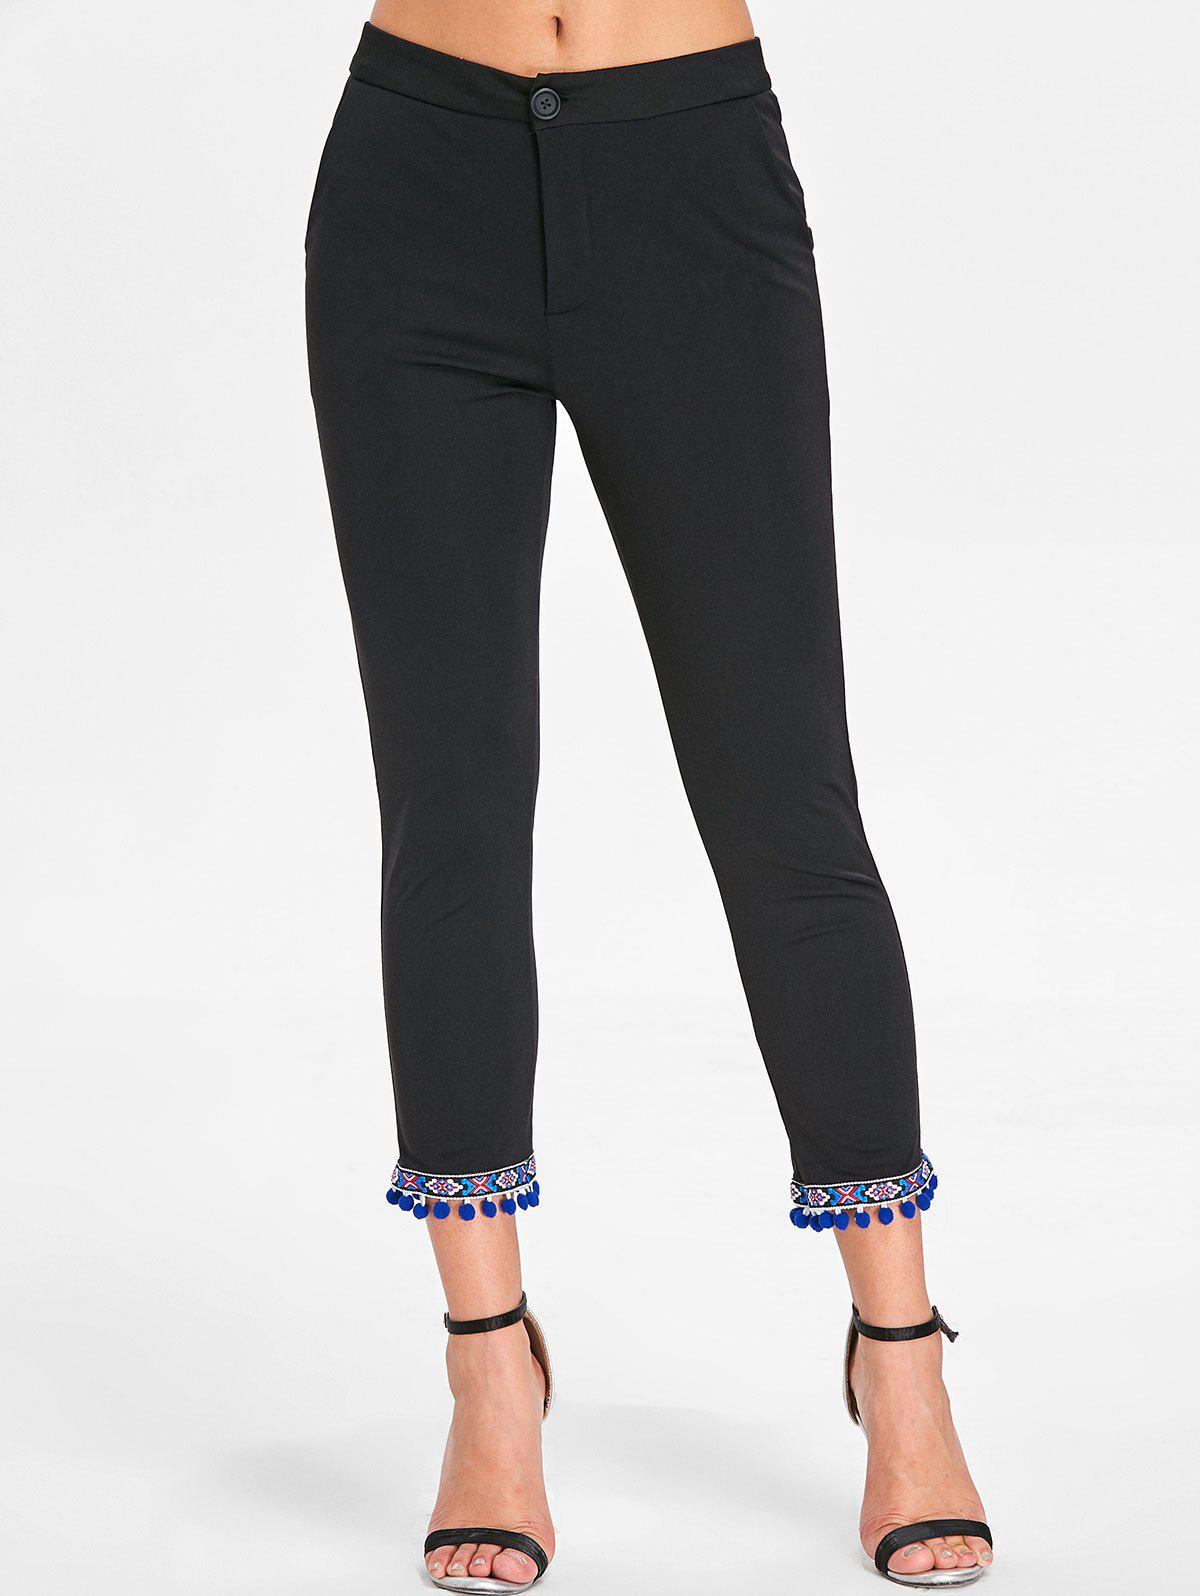 Pom Pom Ninth Skinny Pants - BLACK M